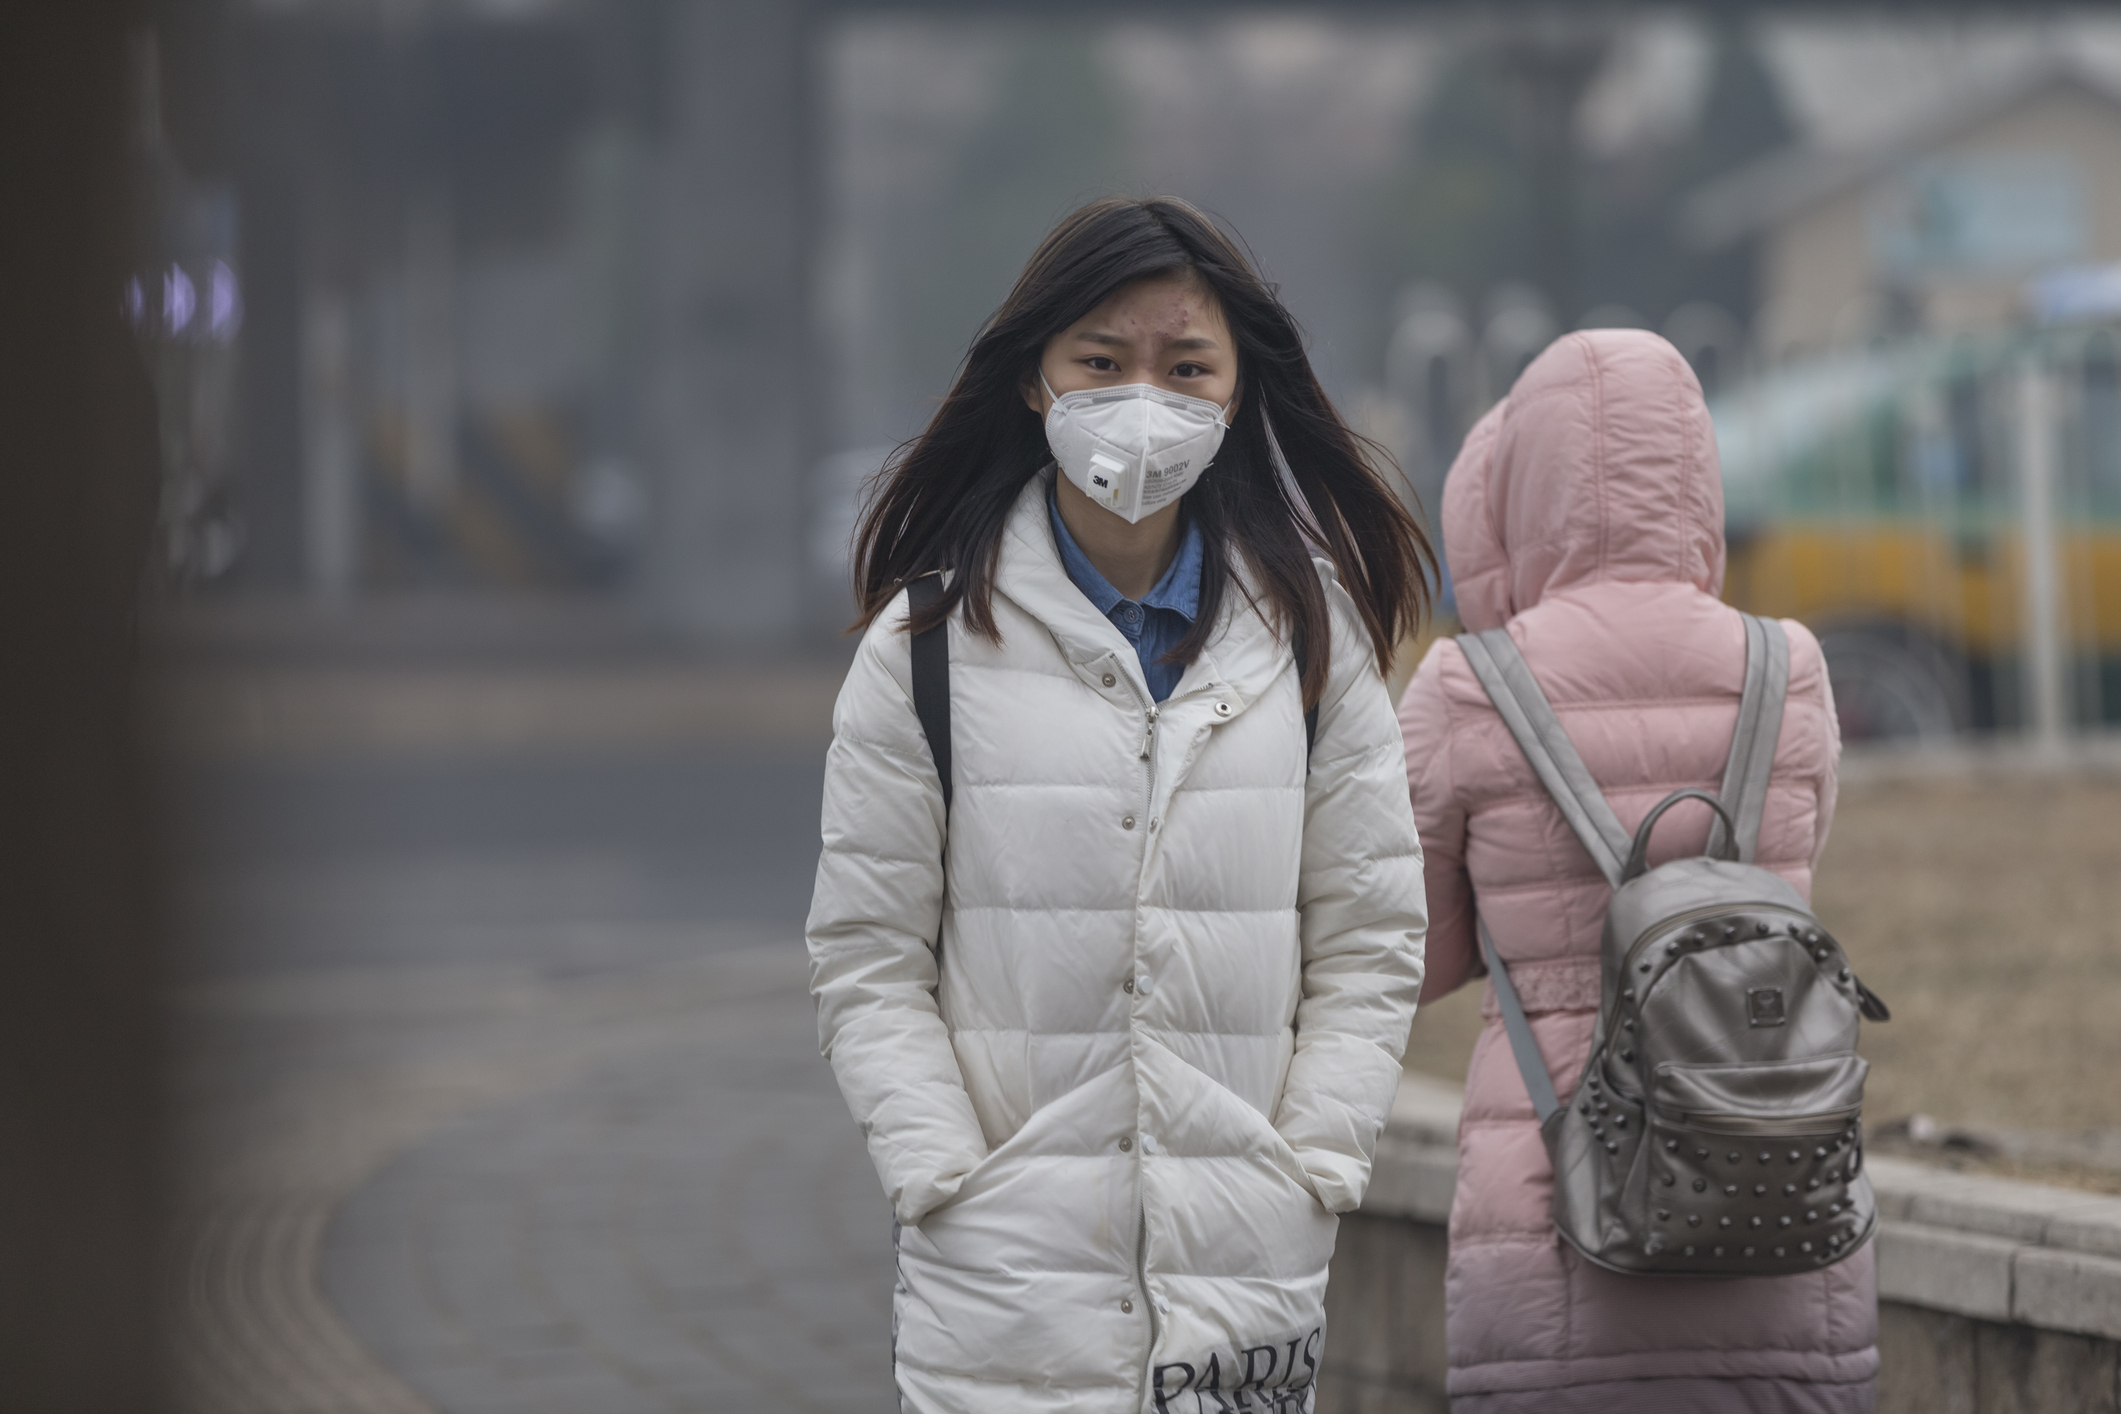 Young Asian woman walking outside in a city while wearing a face mask